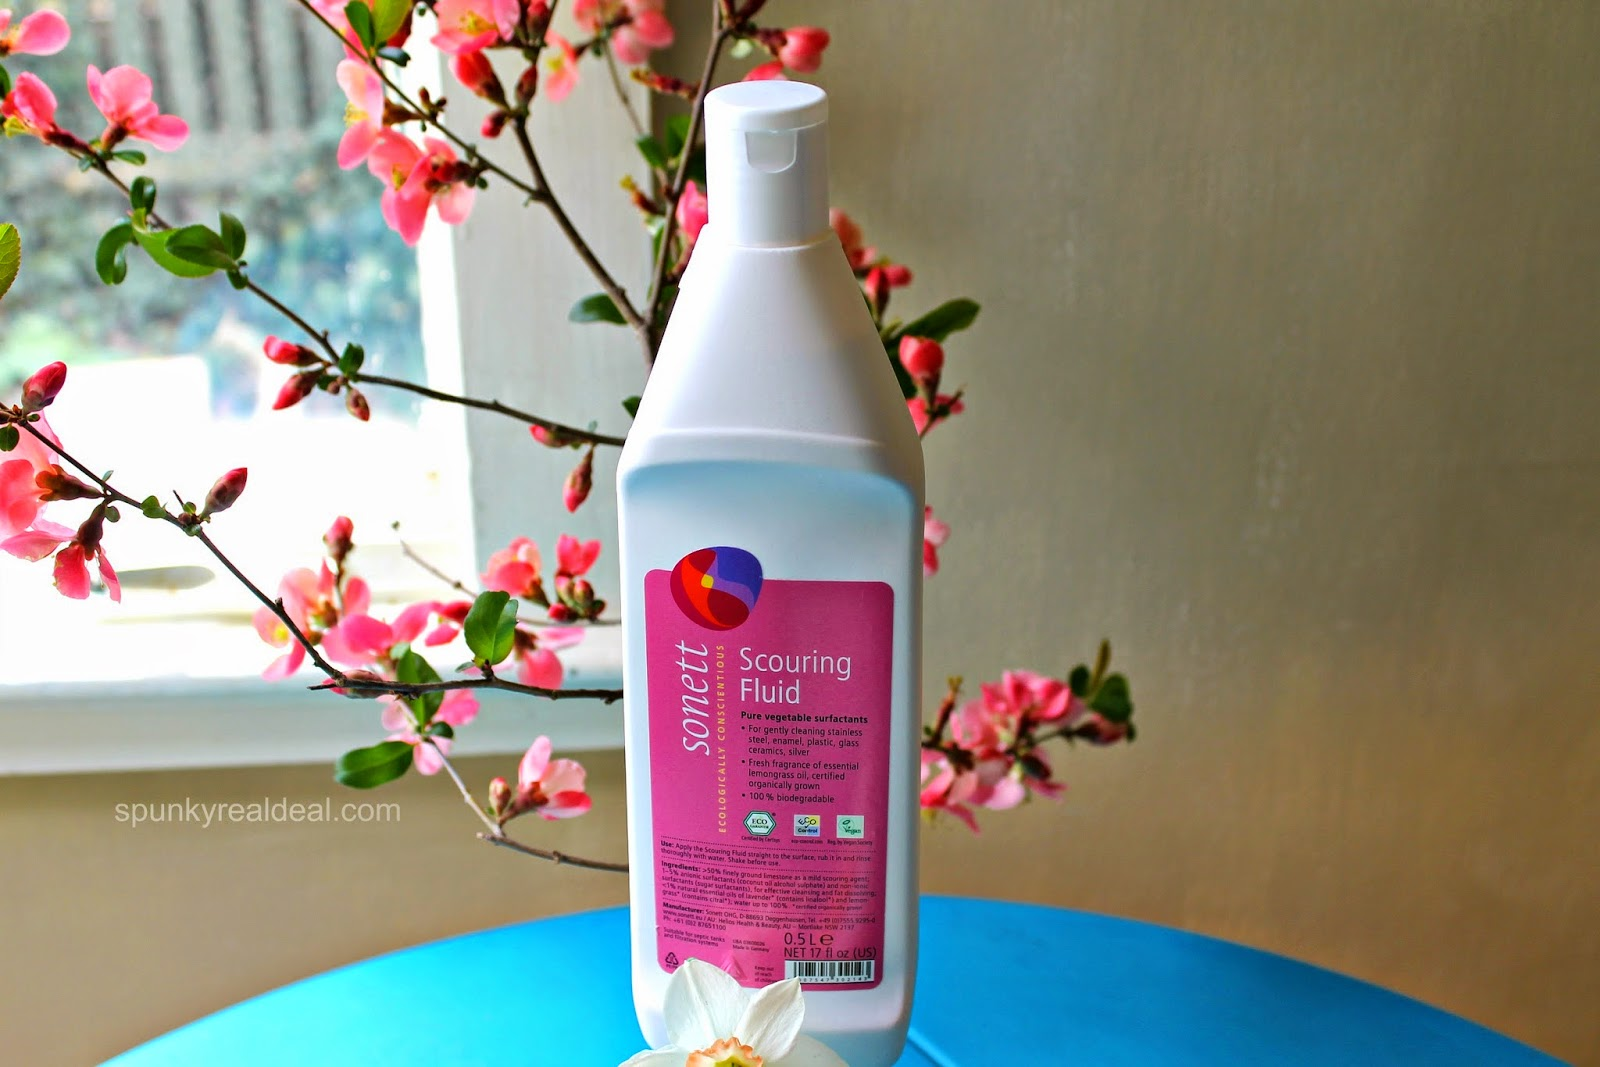 Sonett {Spring Clean Giveaway} 5/21;US #natural #SpringCleaning #household #cleaners #home #Organic